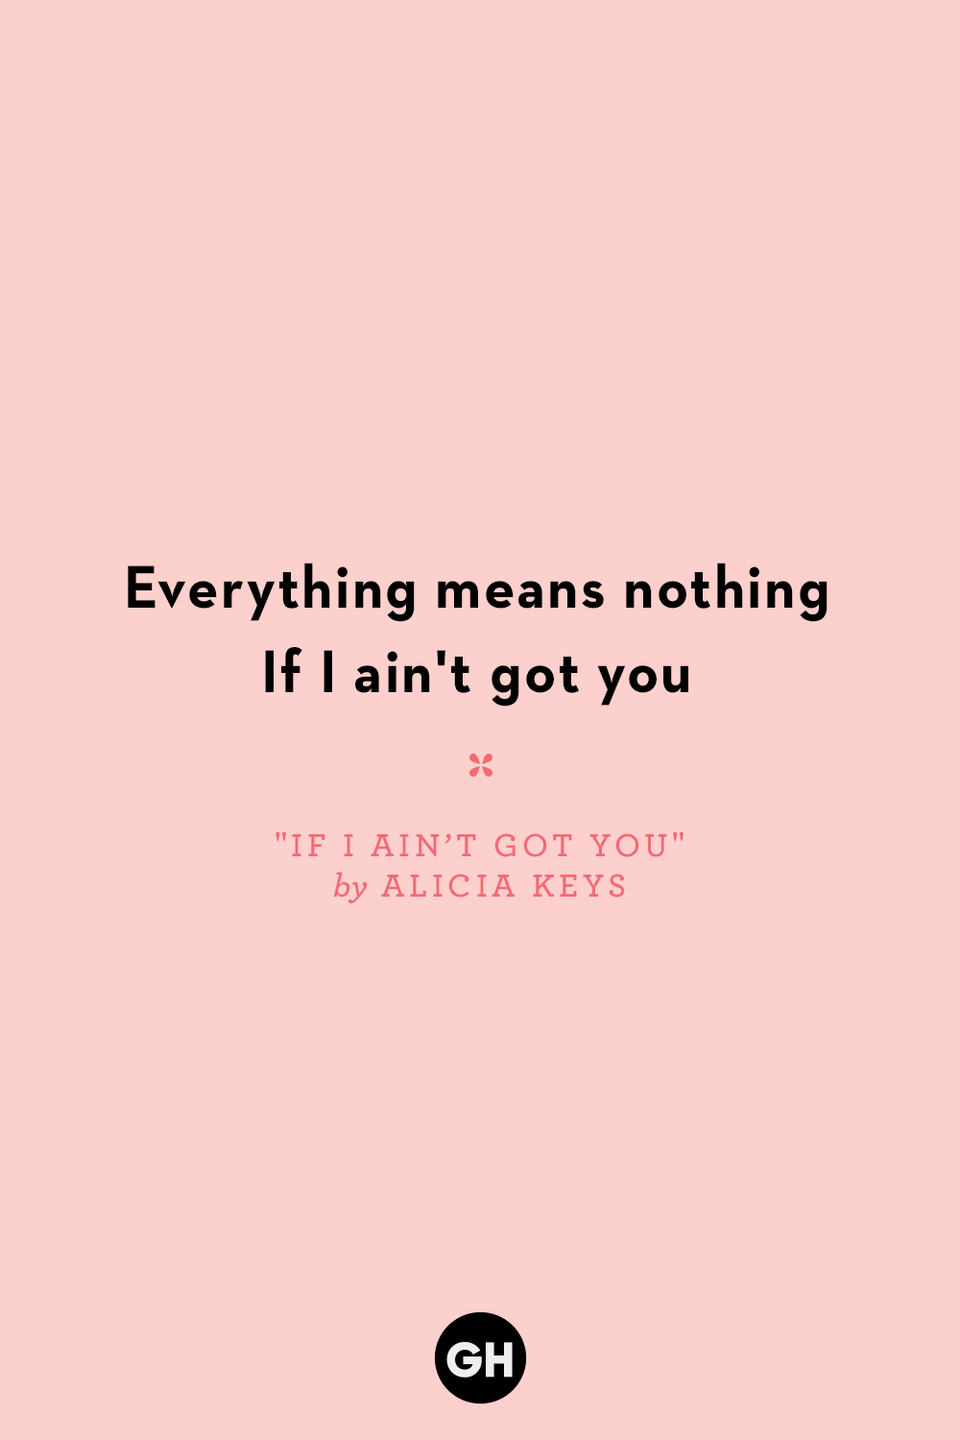 <p>Everything means nothing</p><p>If I ain't got you</p>